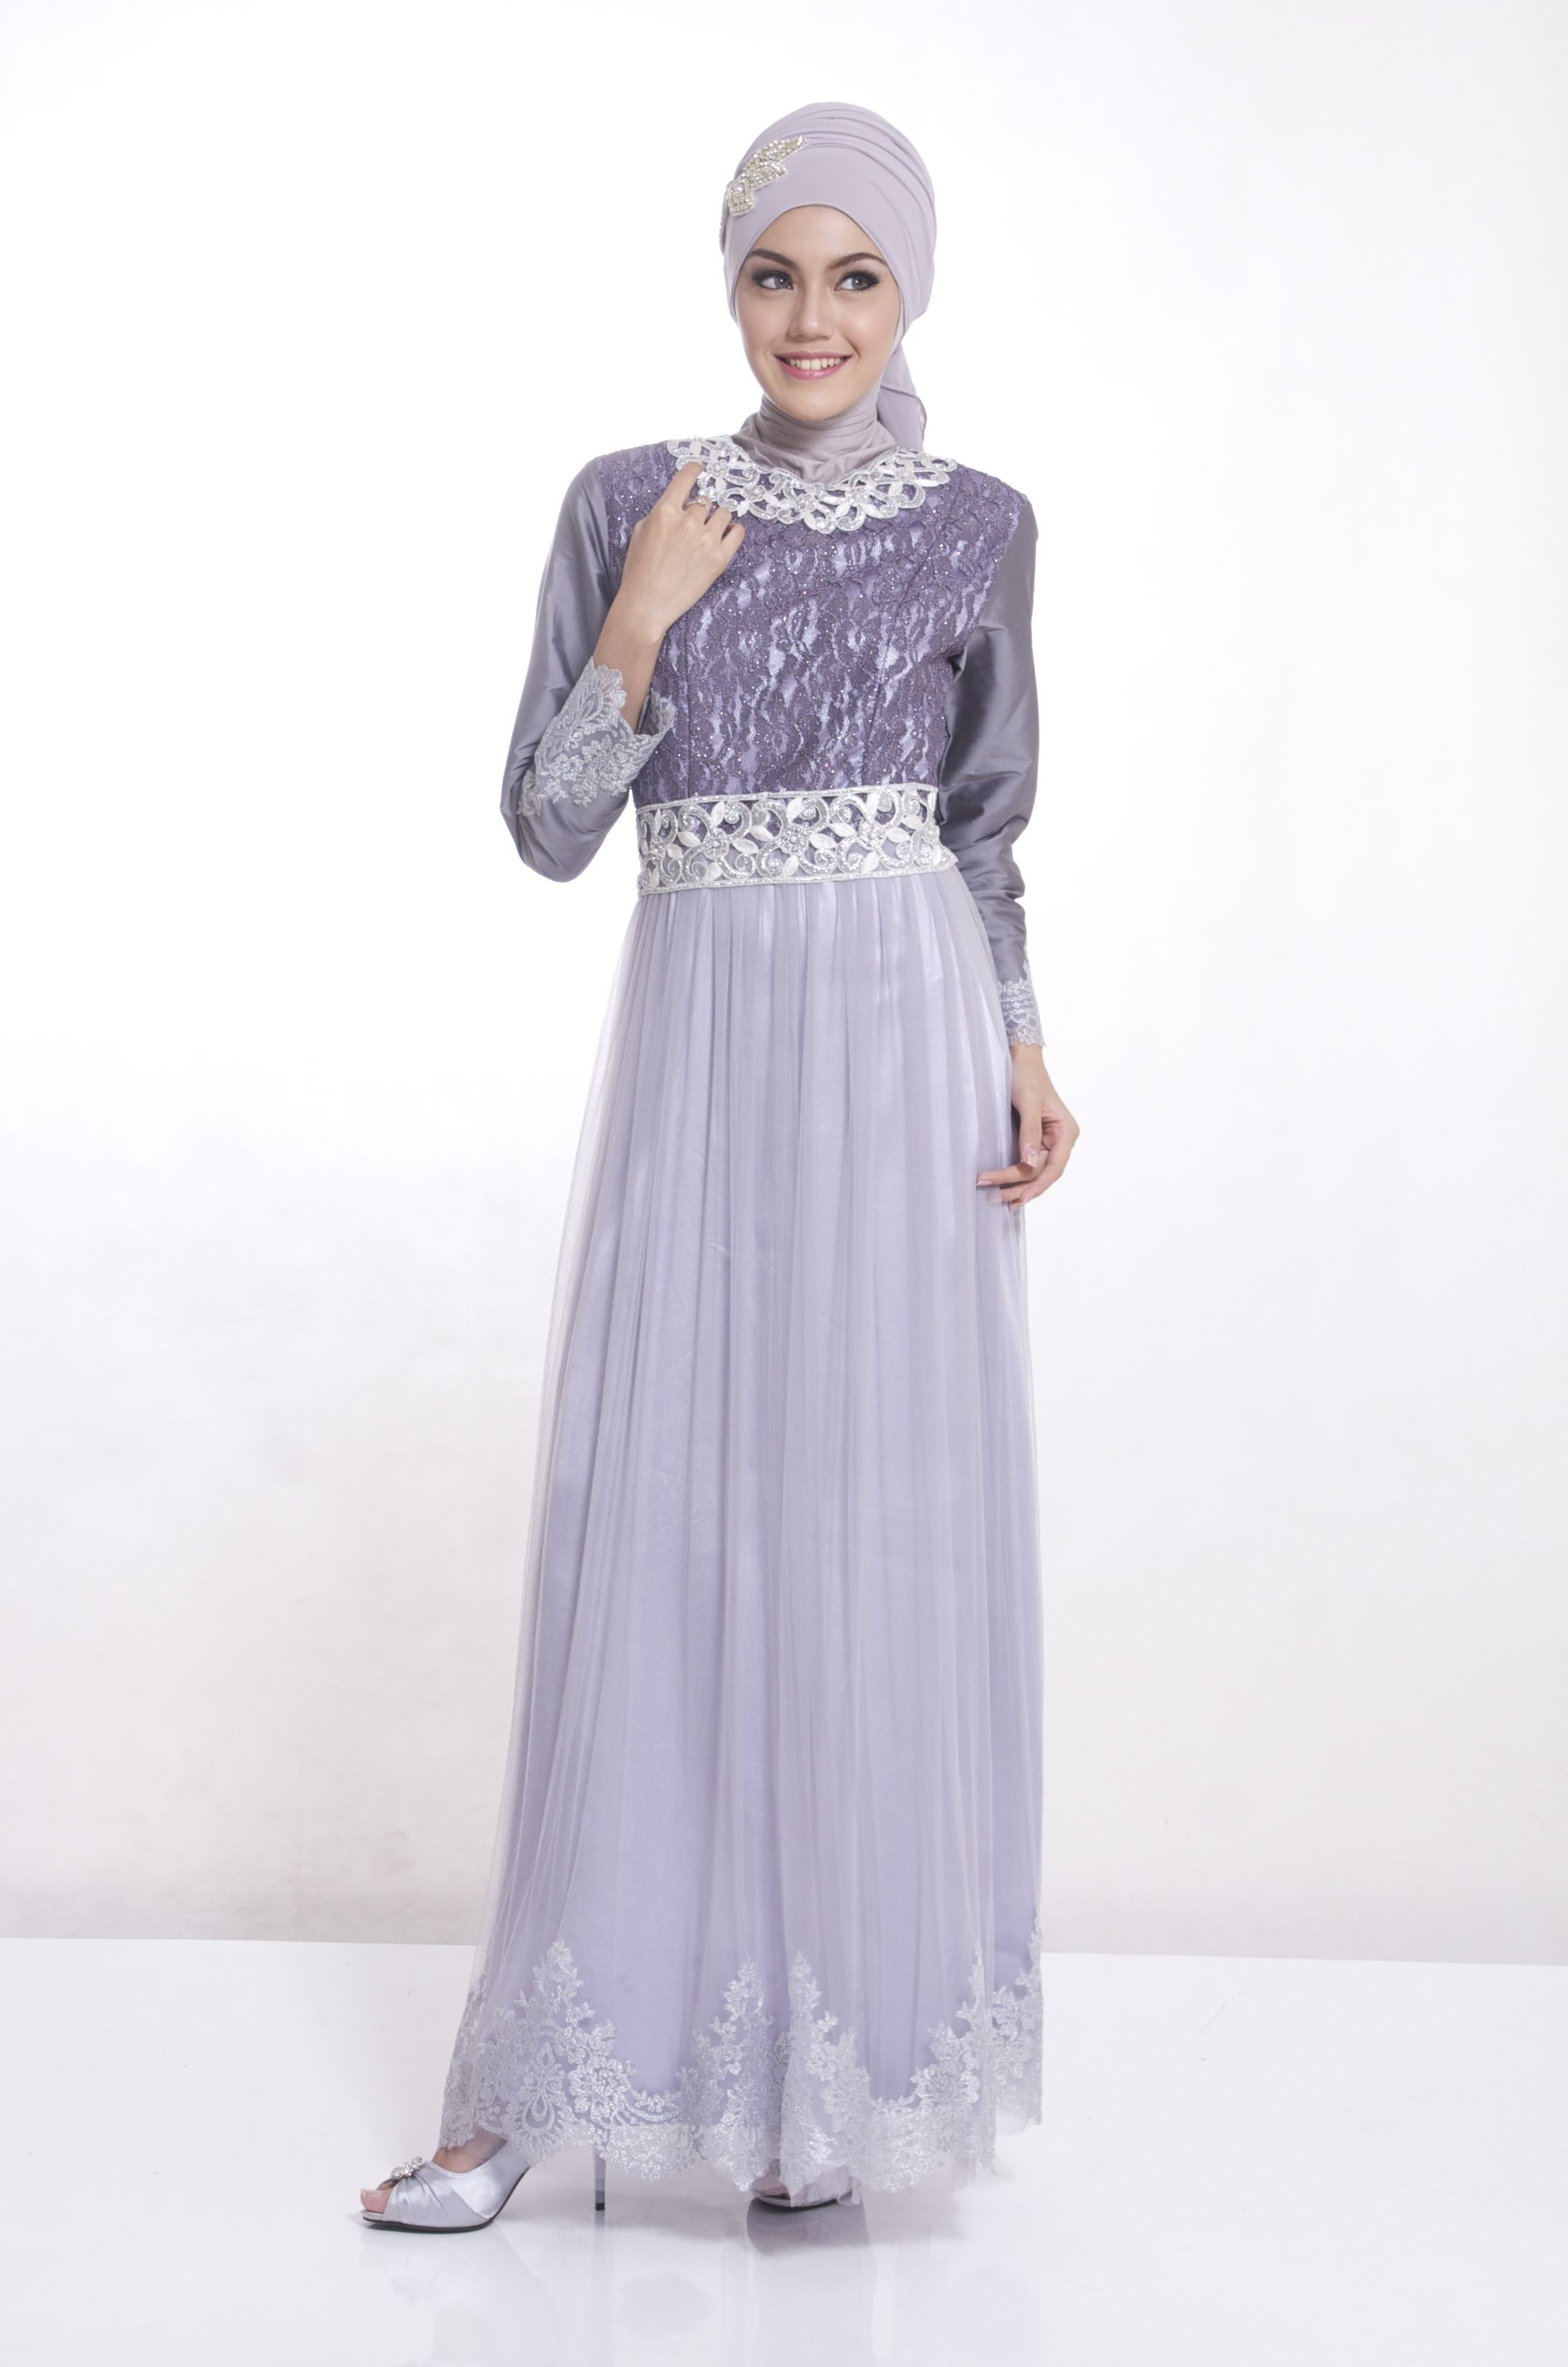 Model baju kebaya modern terbaru holiday and vacation